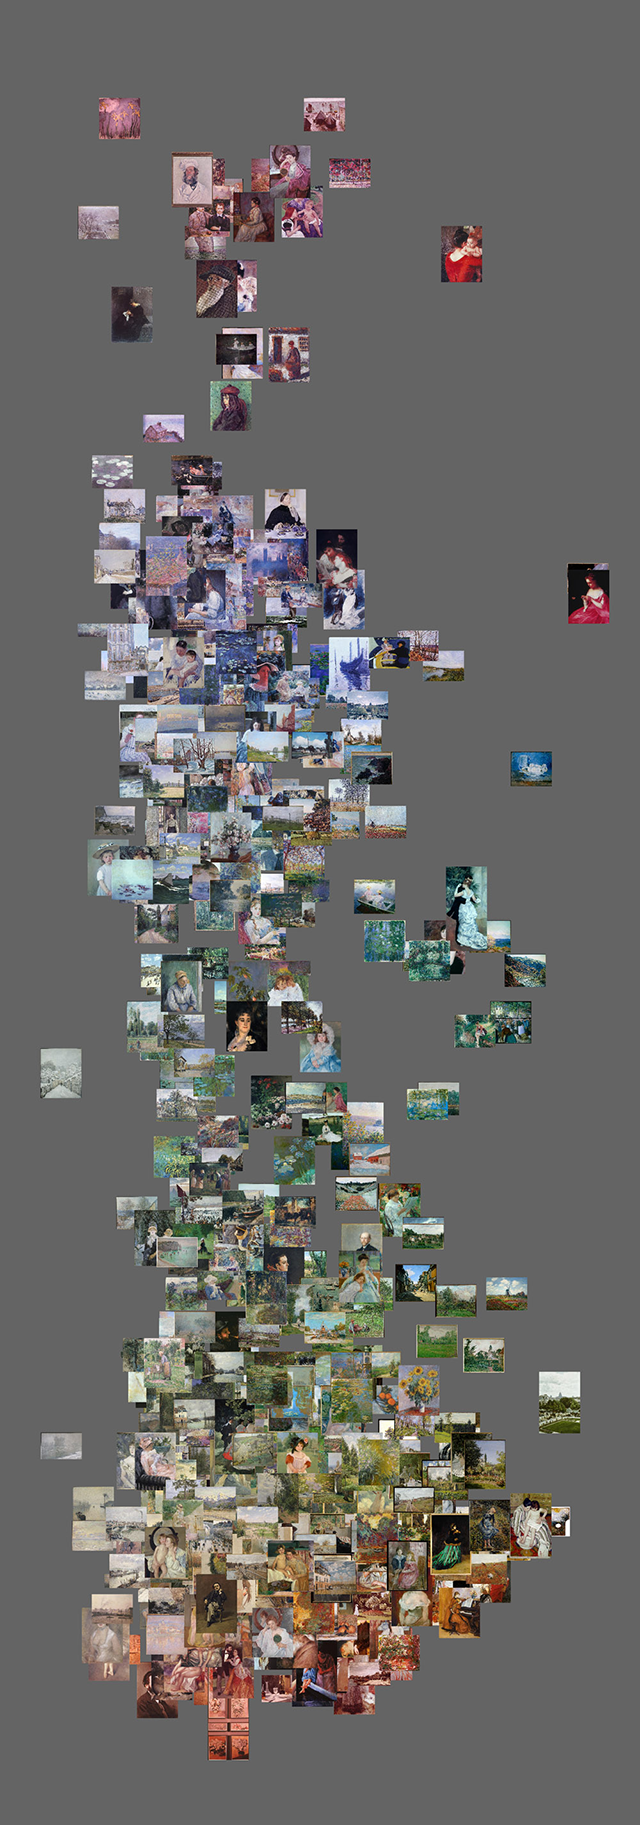 1226 Impressionist paintings (x - saturation, y - hue) w640